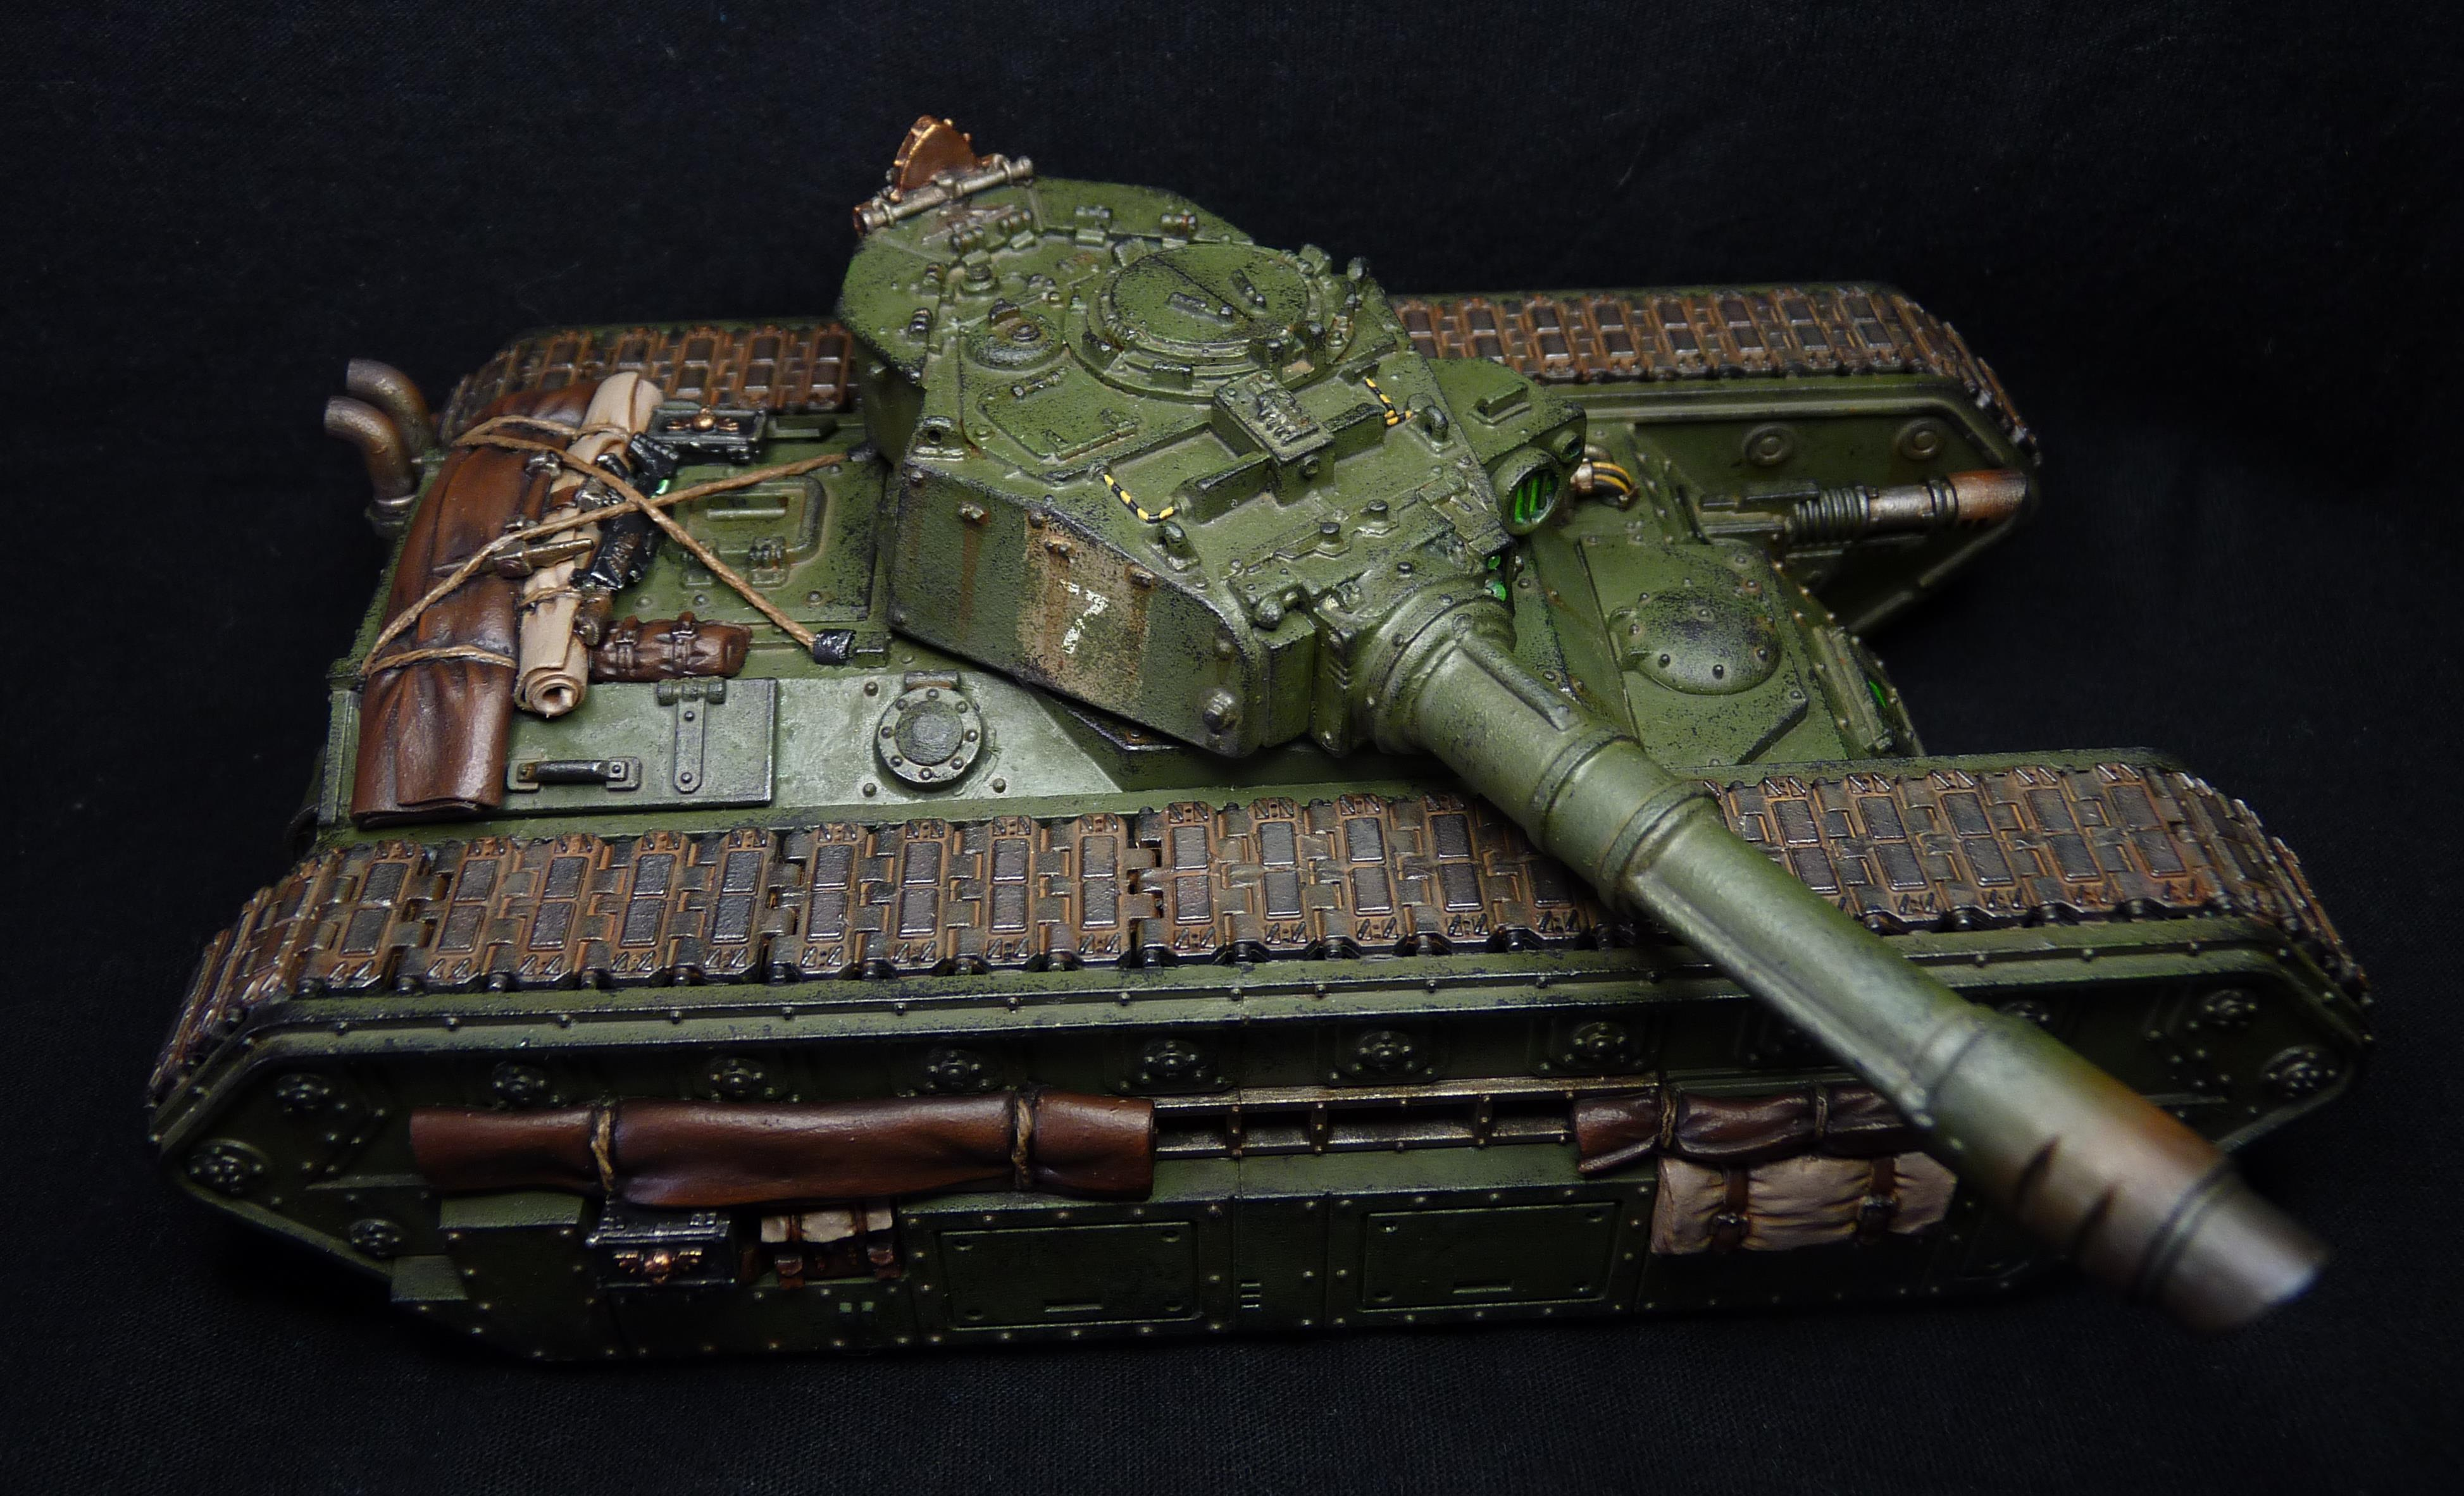 Chimera, Conversion, Imperial Guard, Tank, Vehicle, Weathered